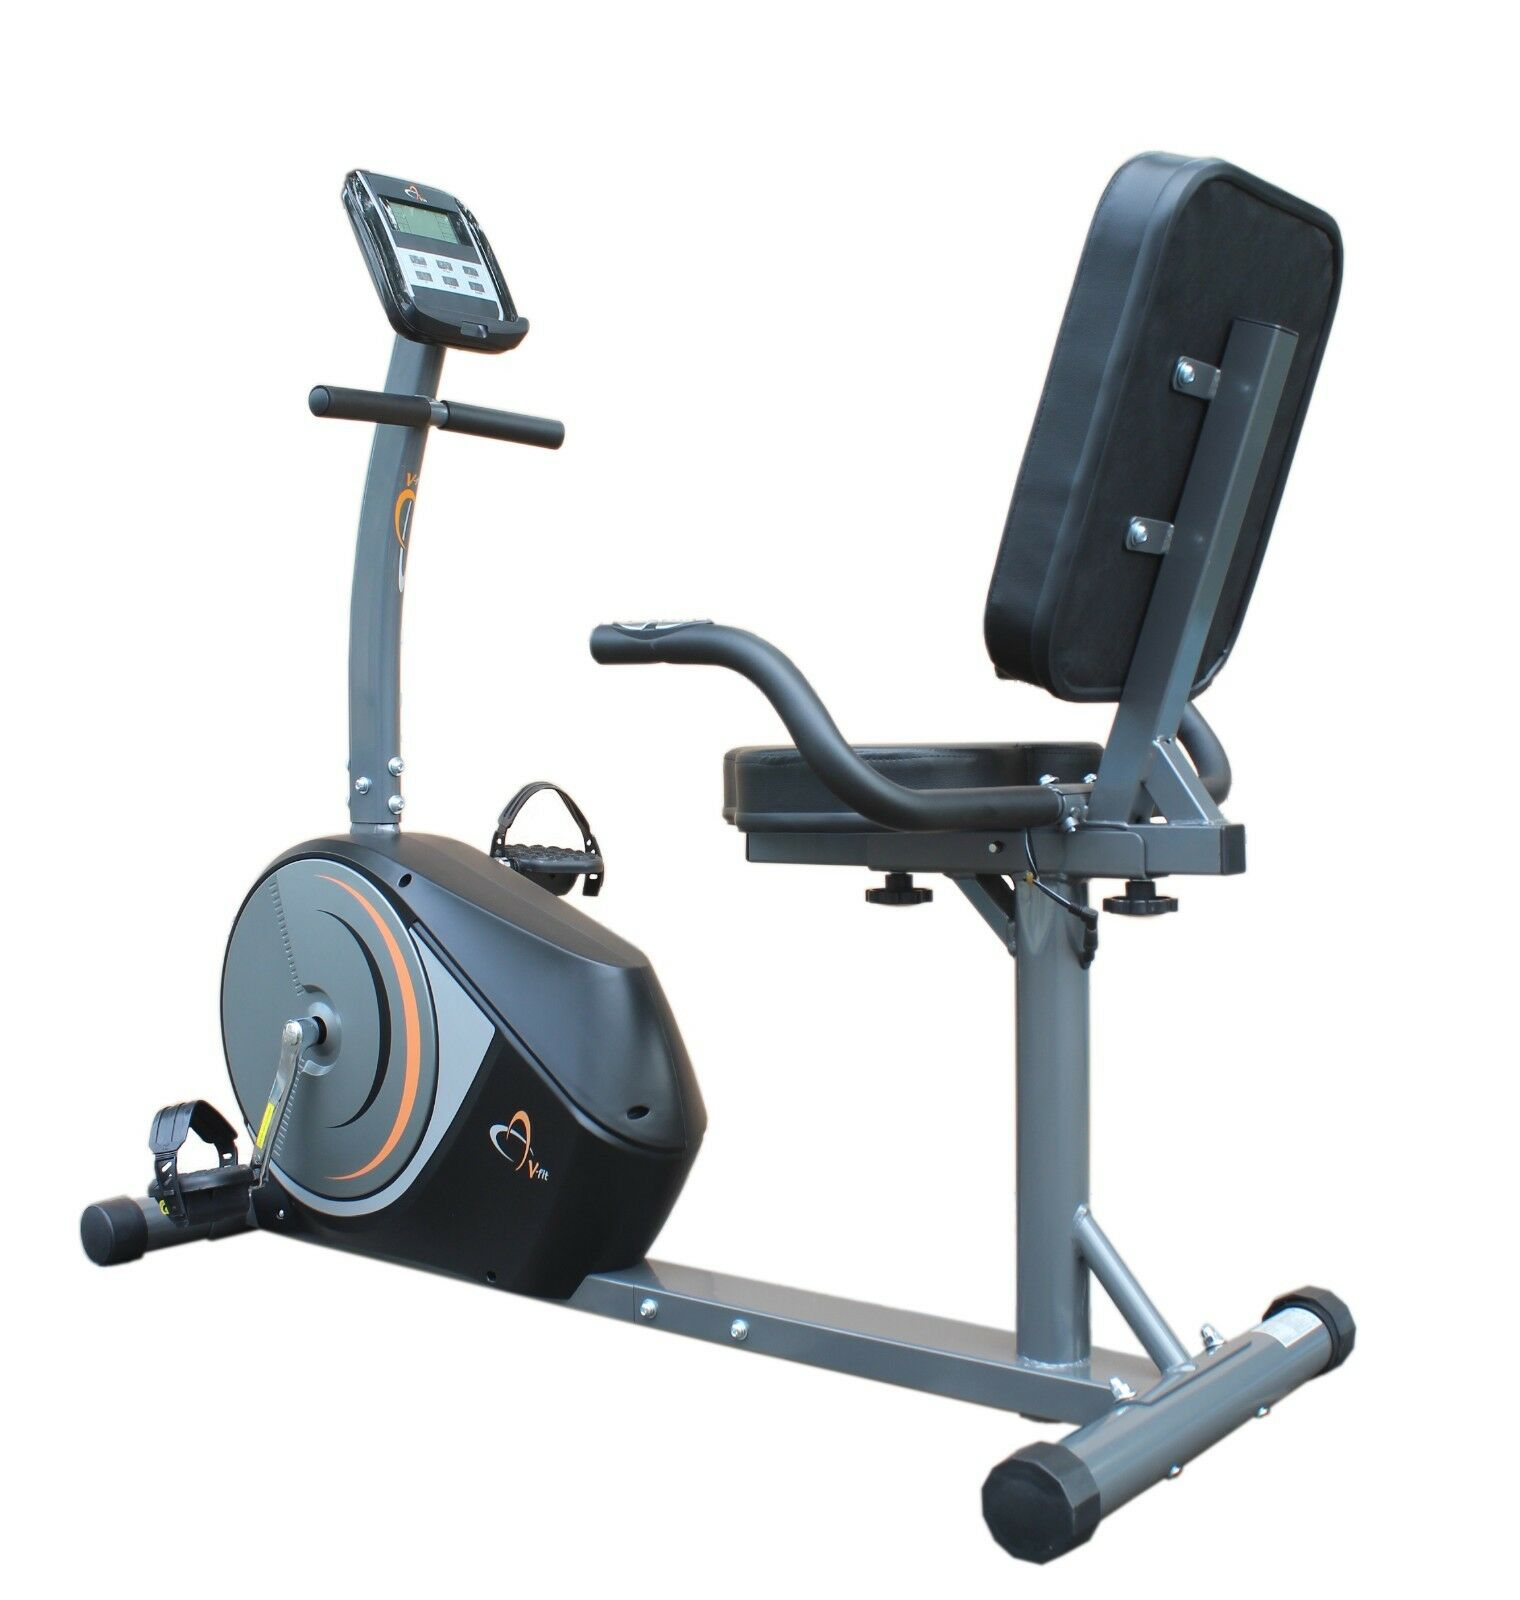 V-fit PMRC-1 Programmable Magnetic Recumbent Cycle Exercise Bike r.r.p